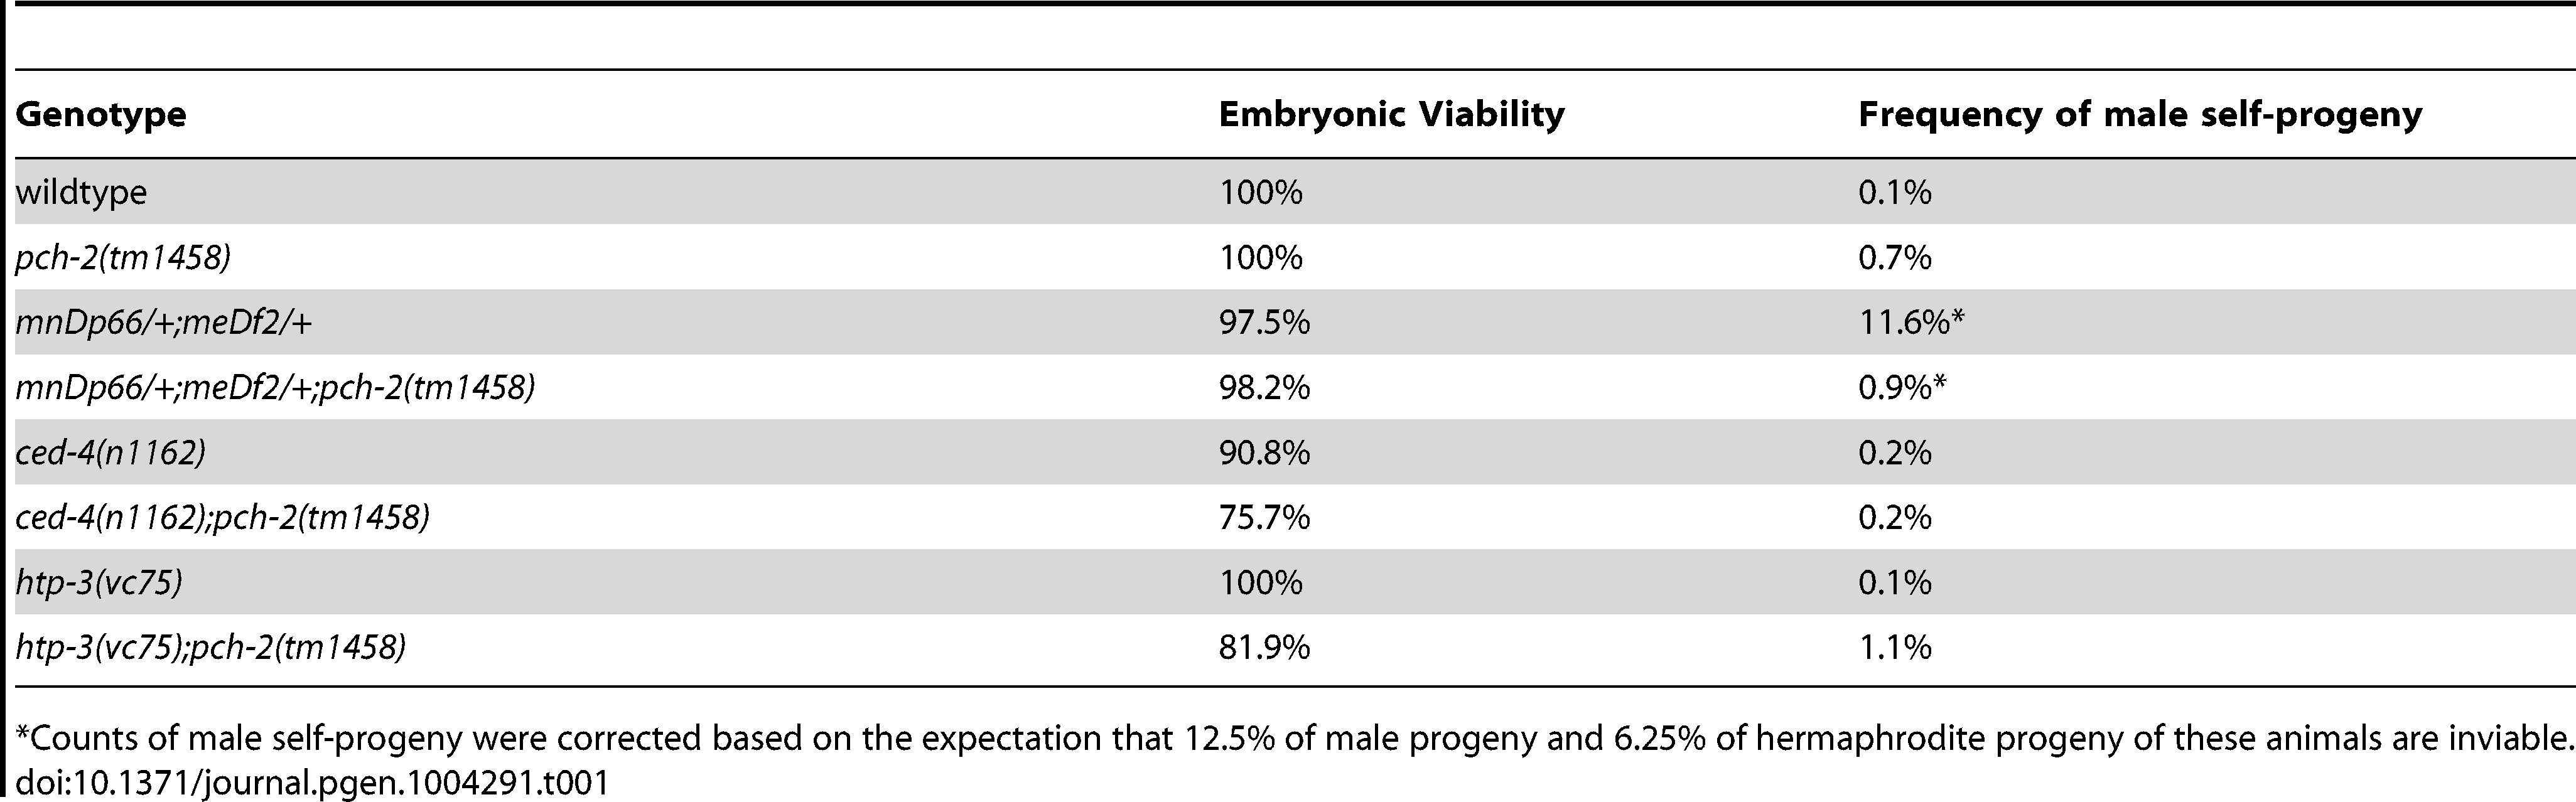 Embryonic viability and frequency of male self-progeny of various mutants.